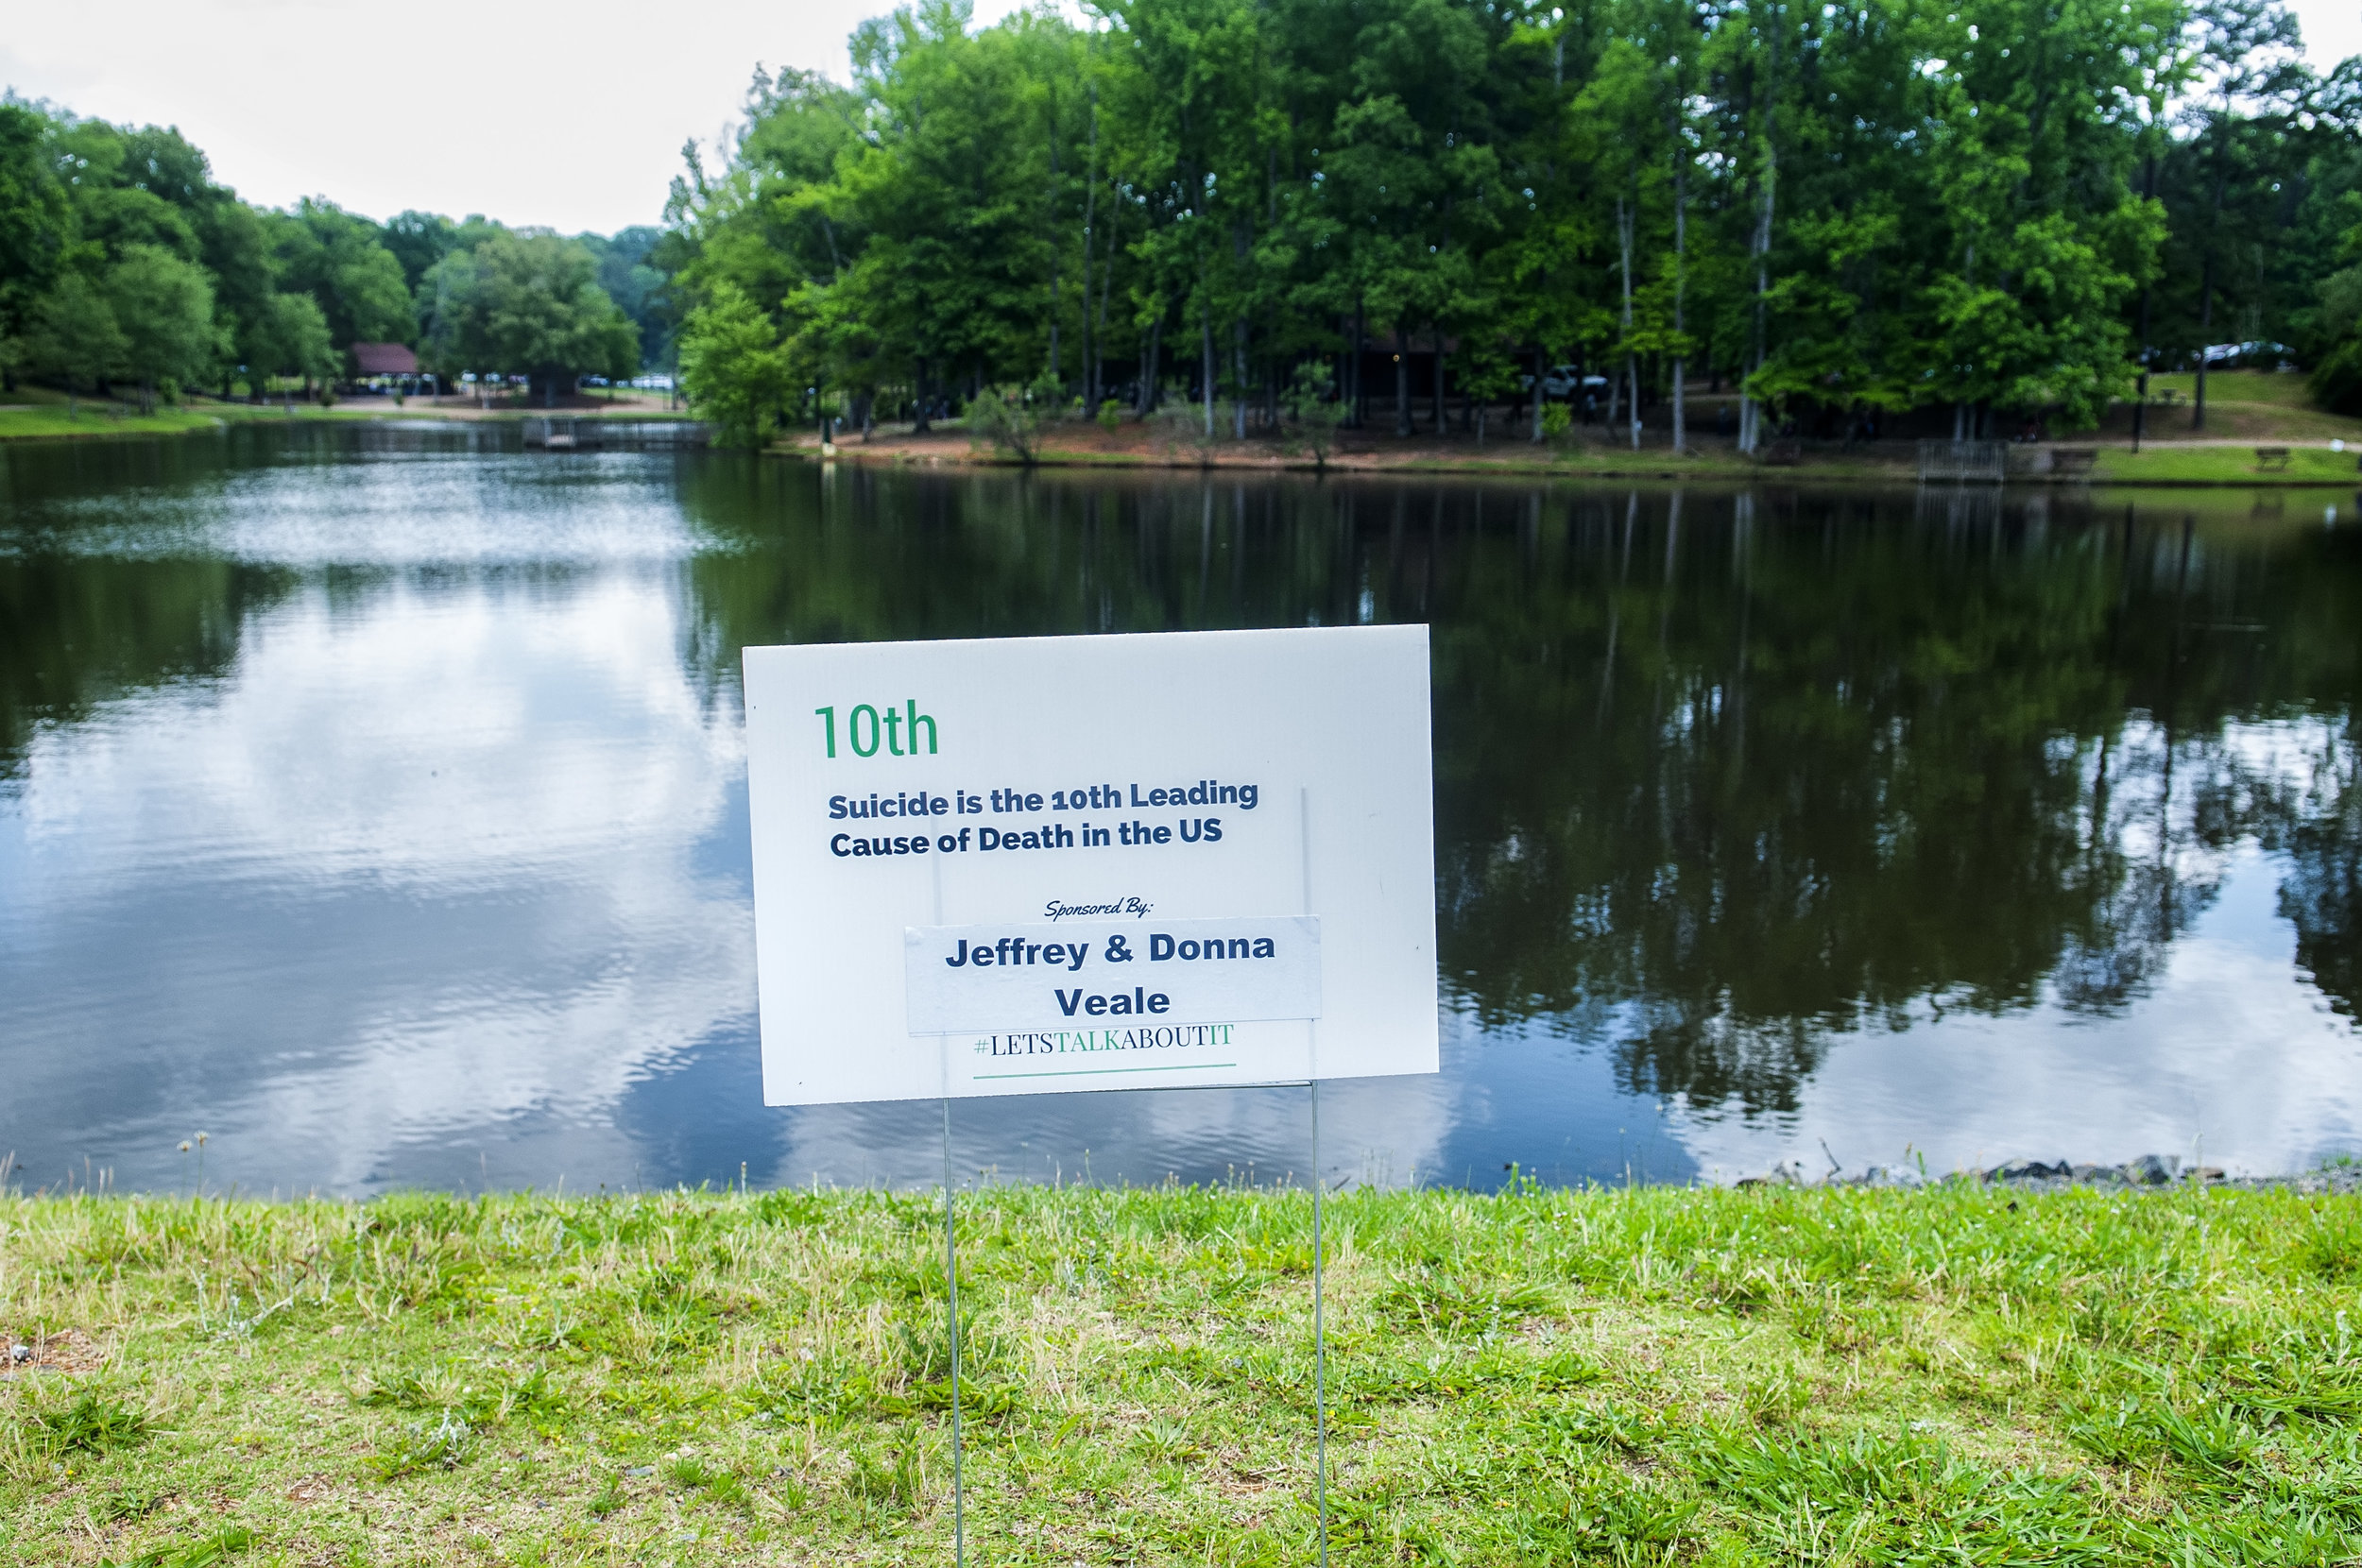 2nd Annual Let's Talk About It Mental Health Awareness Walk @ Park Rd Park 5-20-17 by Jon Strayhorn 194.jpg